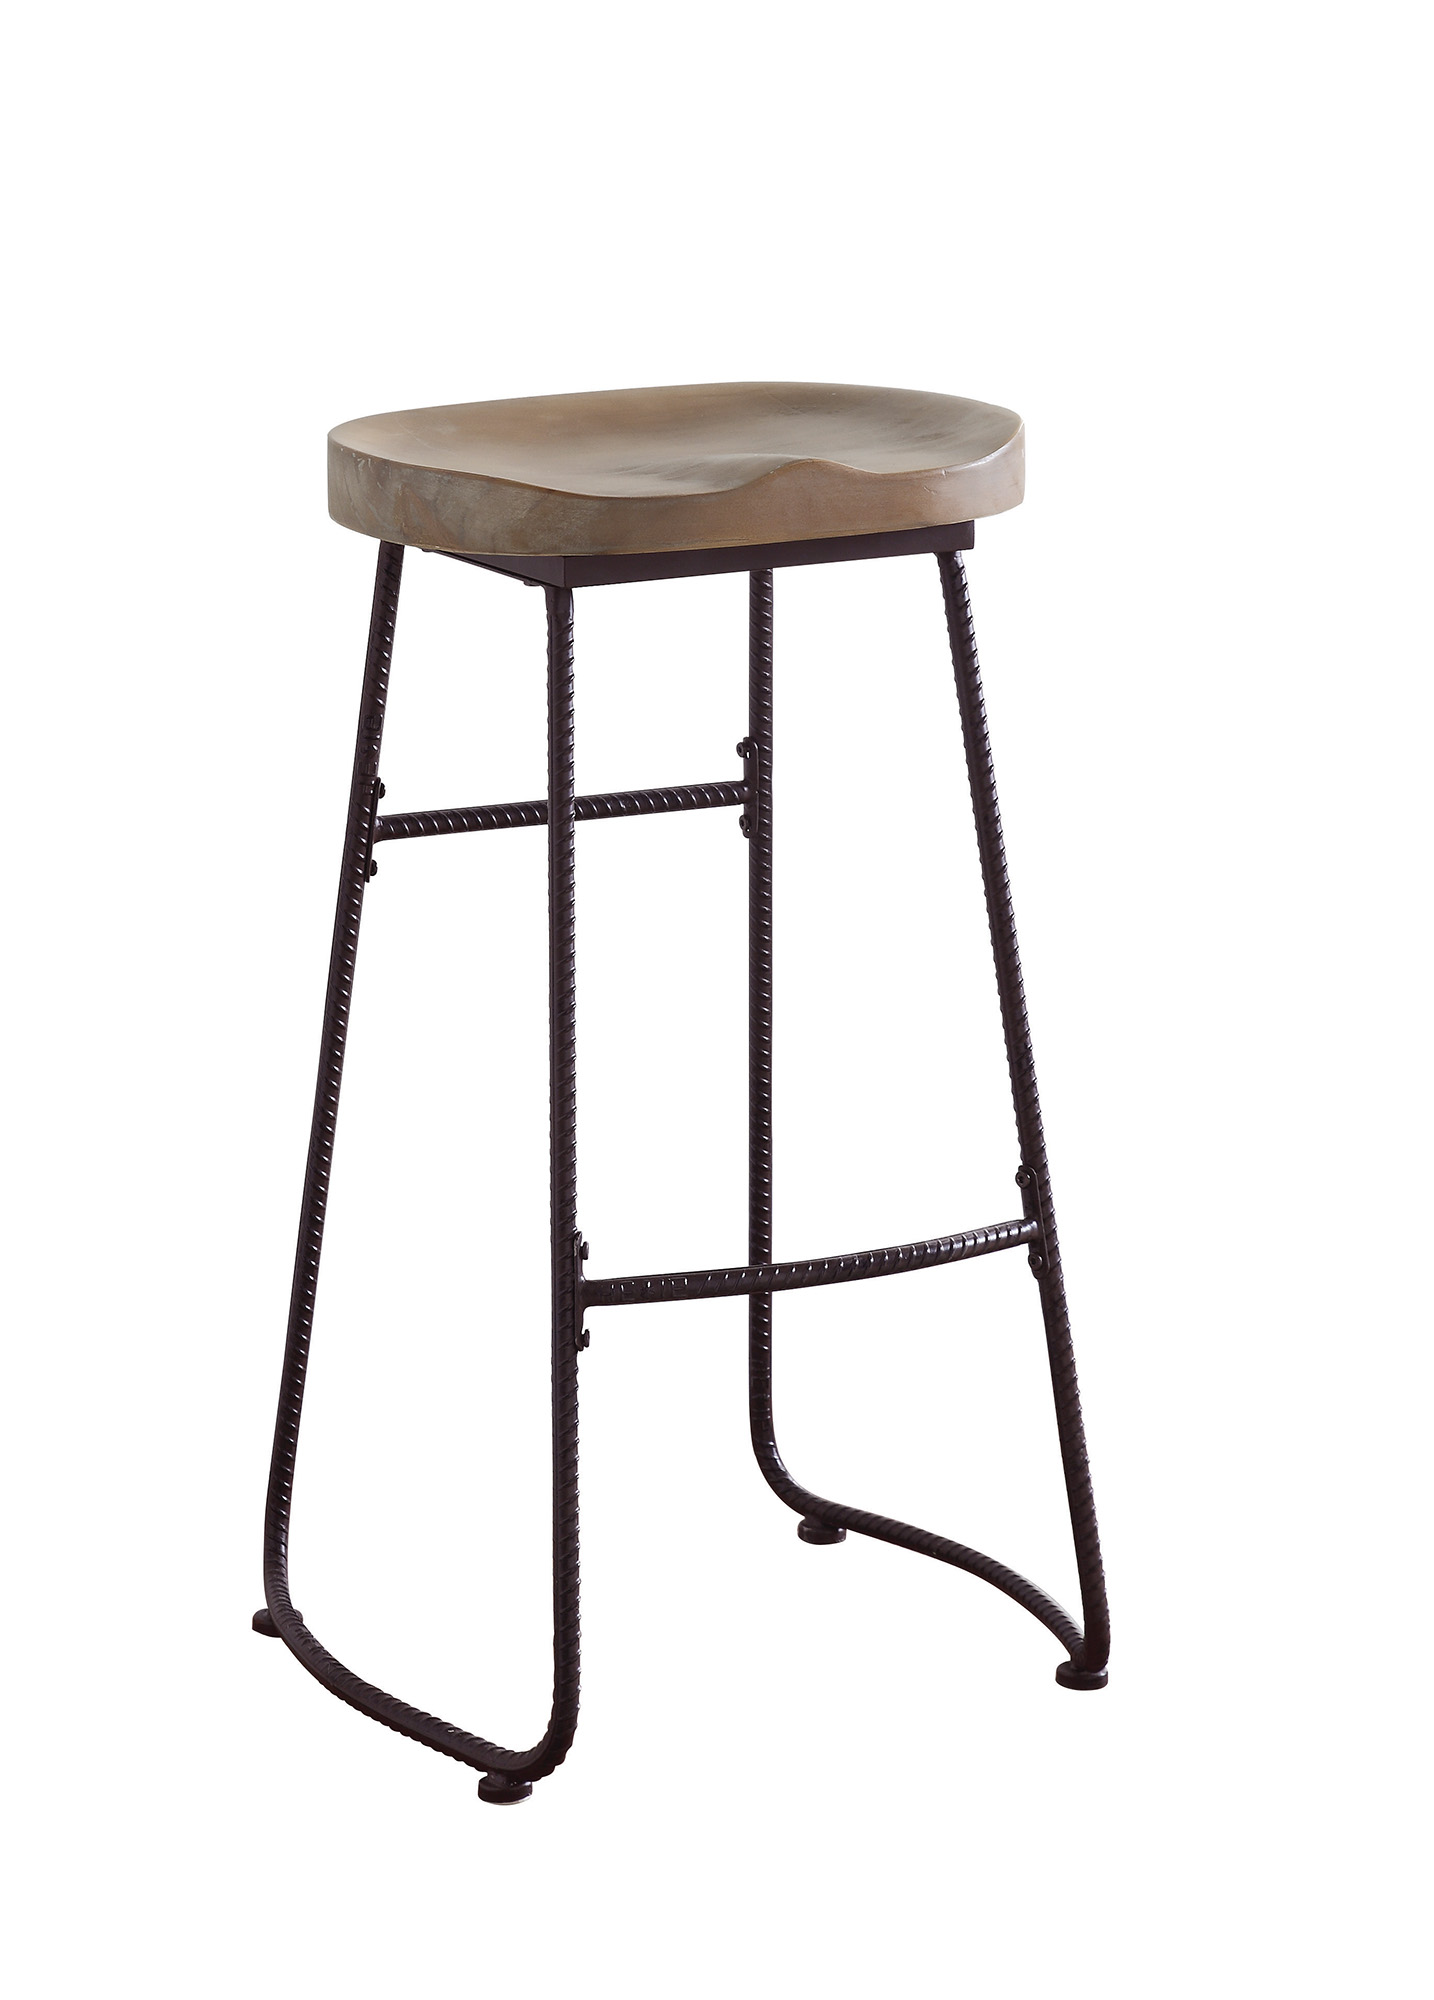 Groovy Details About Coaster Metal And Wood Bar Stool 101086 Gmtry Best Dining Table And Chair Ideas Images Gmtryco